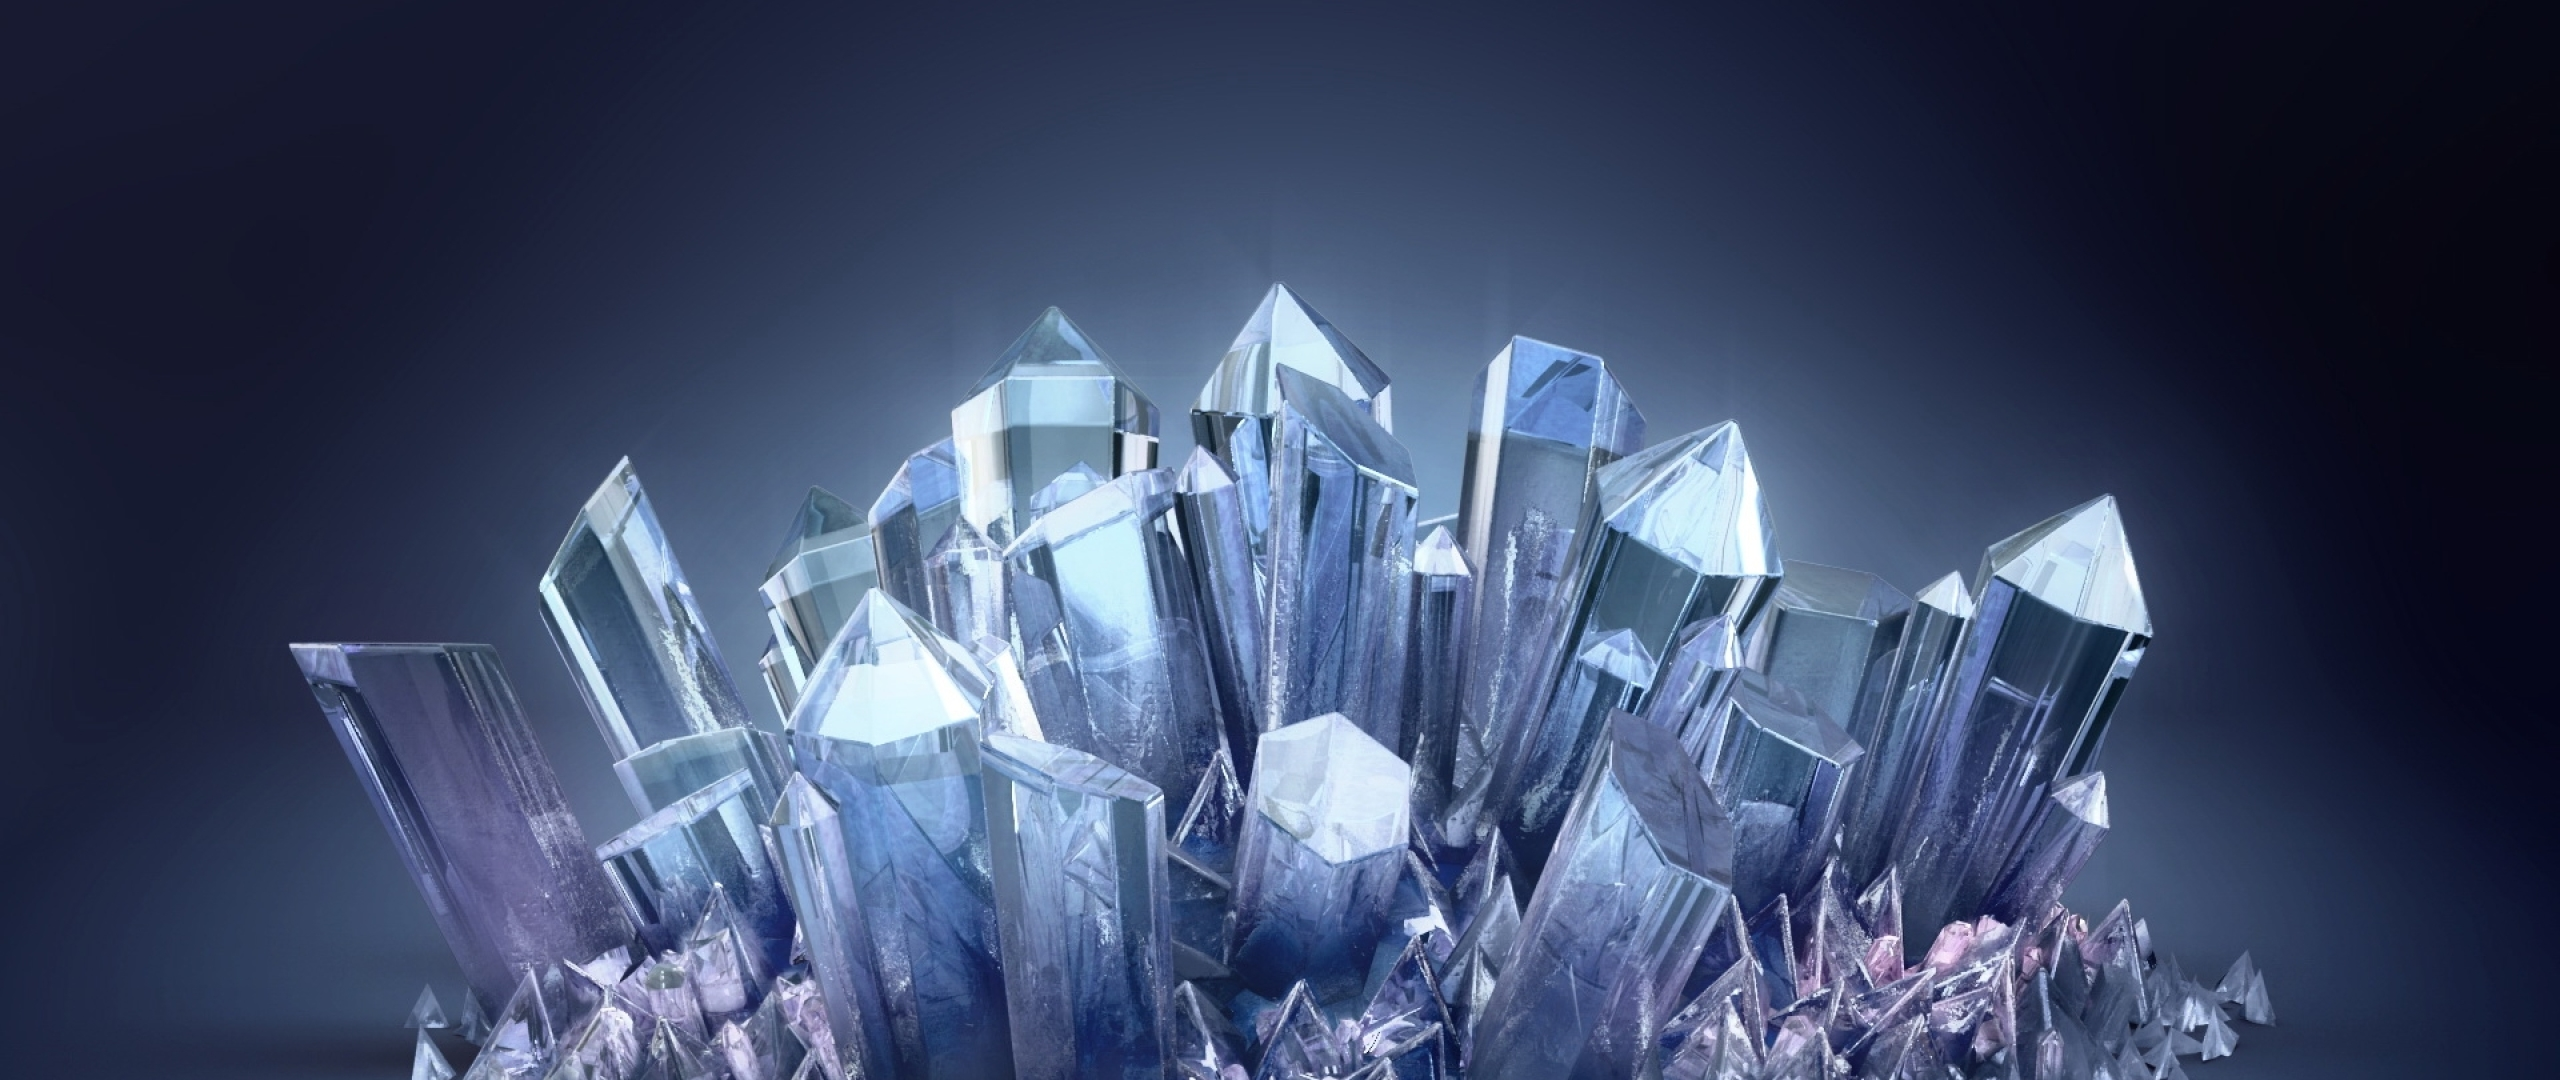 crystal cl native resolution - HD2560×1080